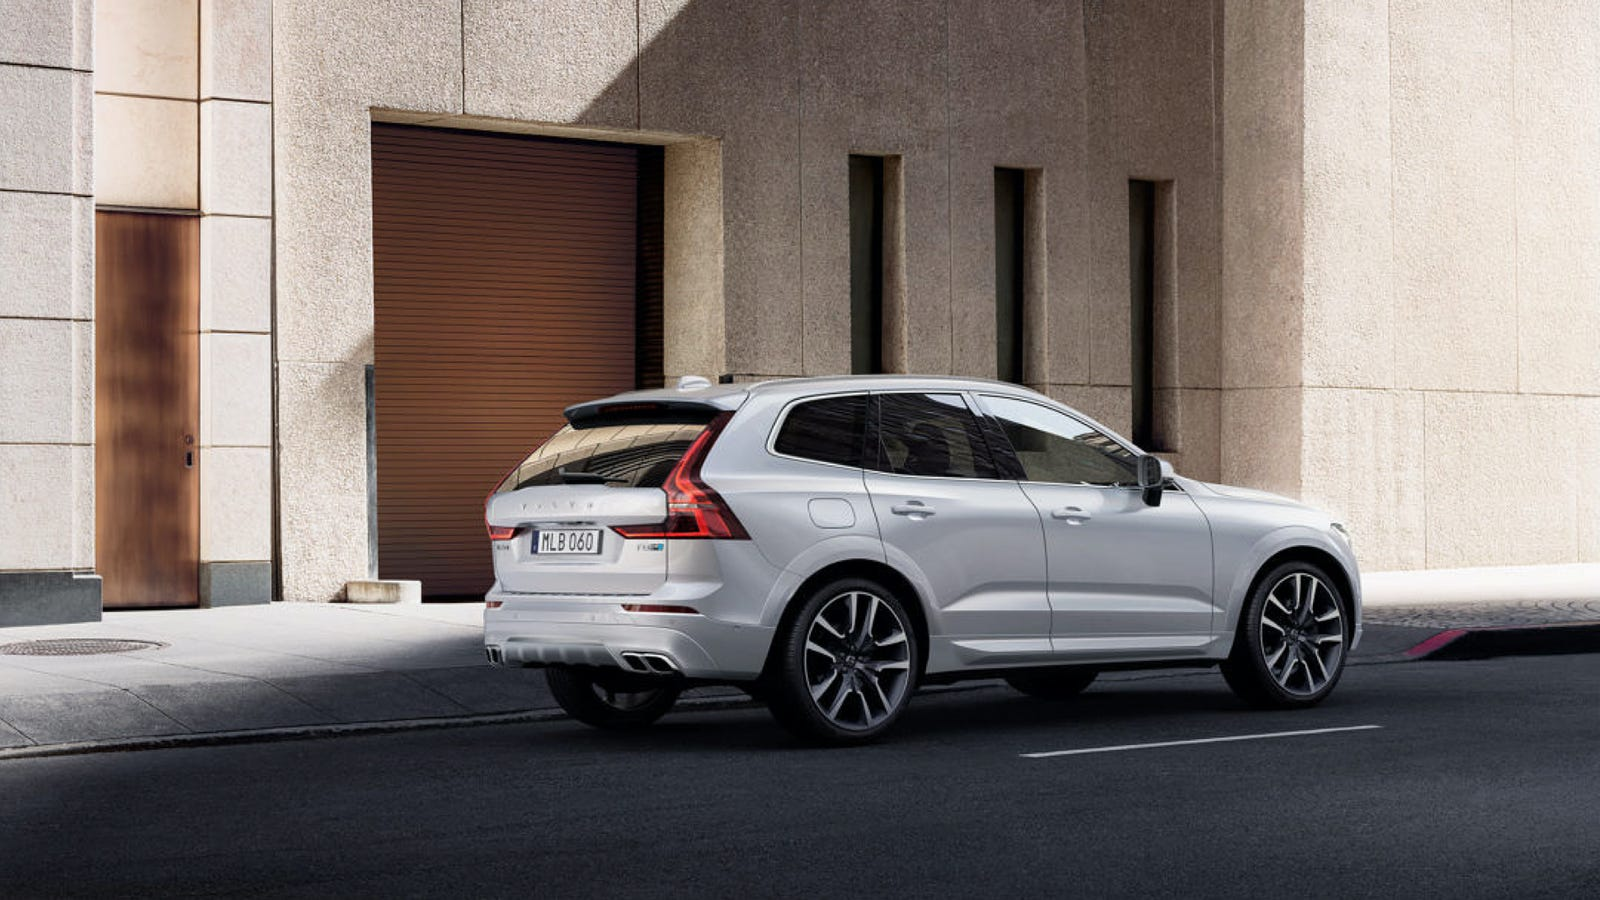 volvo xc60 news, videos, reviews and gossip - jalopnik